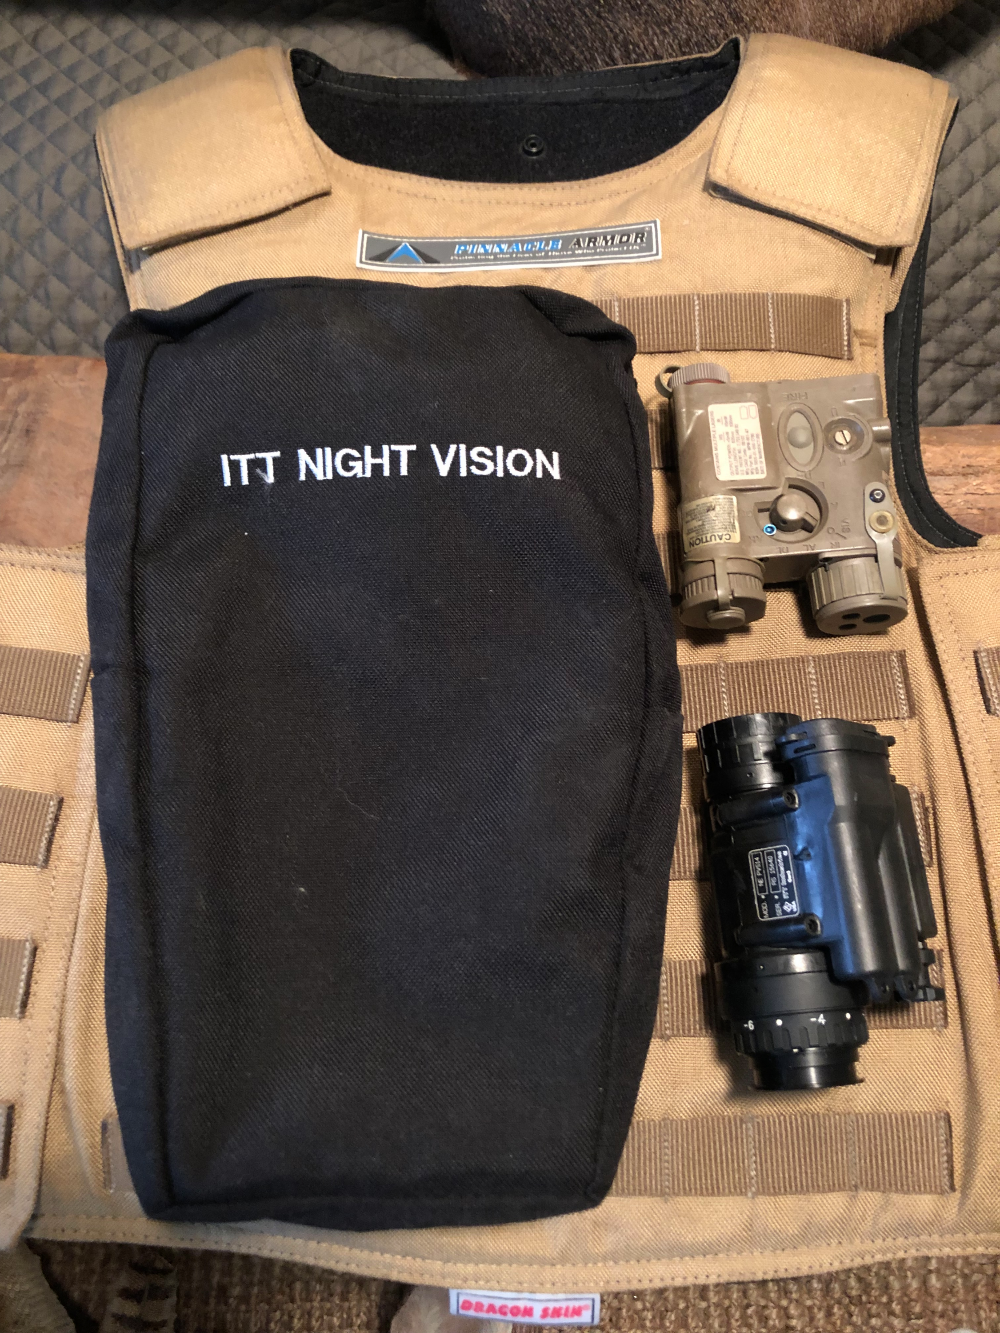 ITT AN/PVS-14 Monocular Autogated Night Vision Device Used